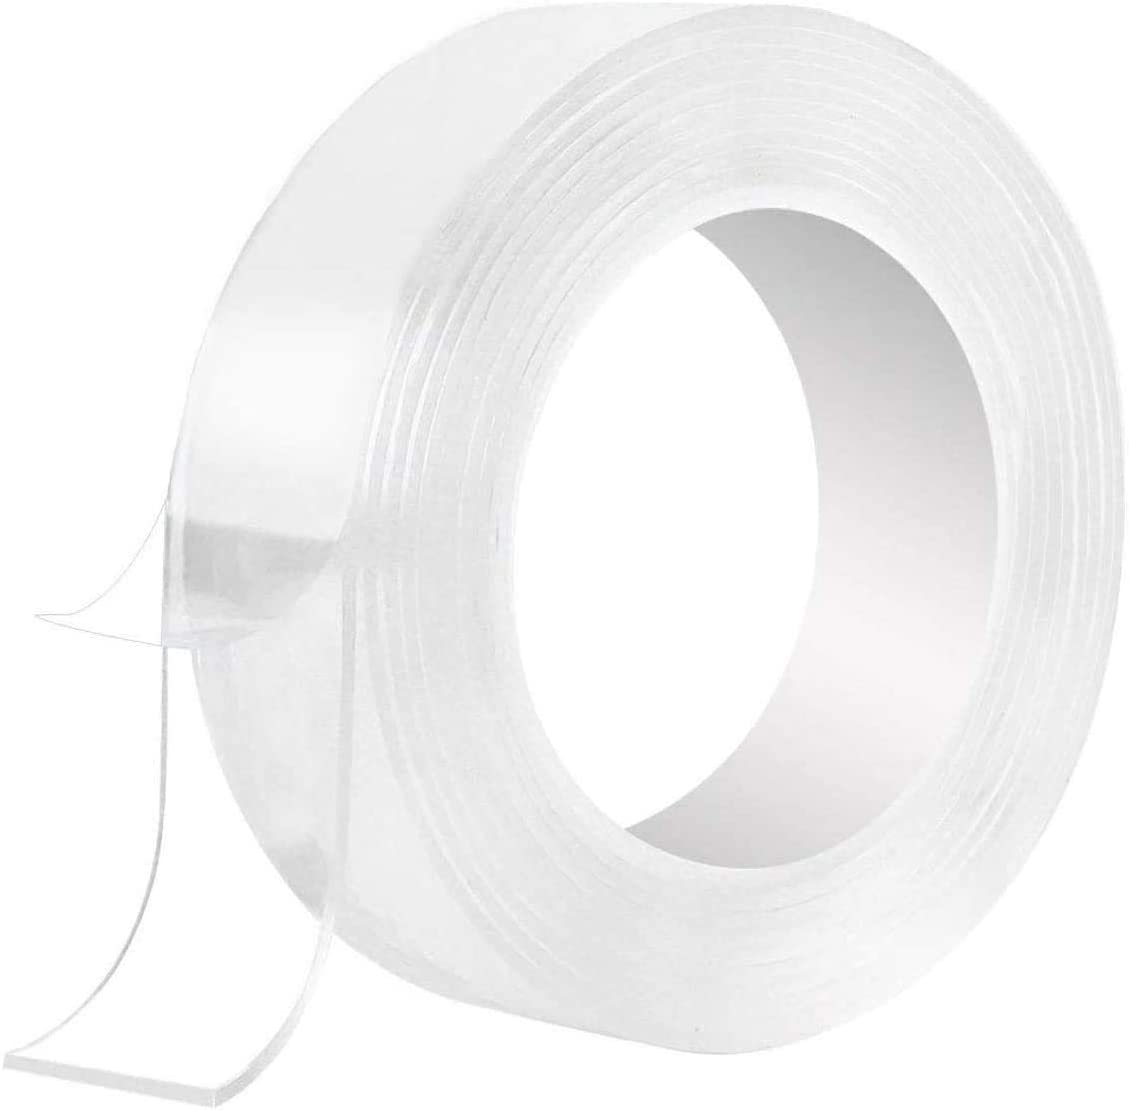 Washable Adhesive Tape Anlising Nano Double Sided Transparent Silicone Gel Grip 3M//9.84ft Reusable Washable Gel Tape for Wall,Room,Paste Photos and Posters,Paste Items